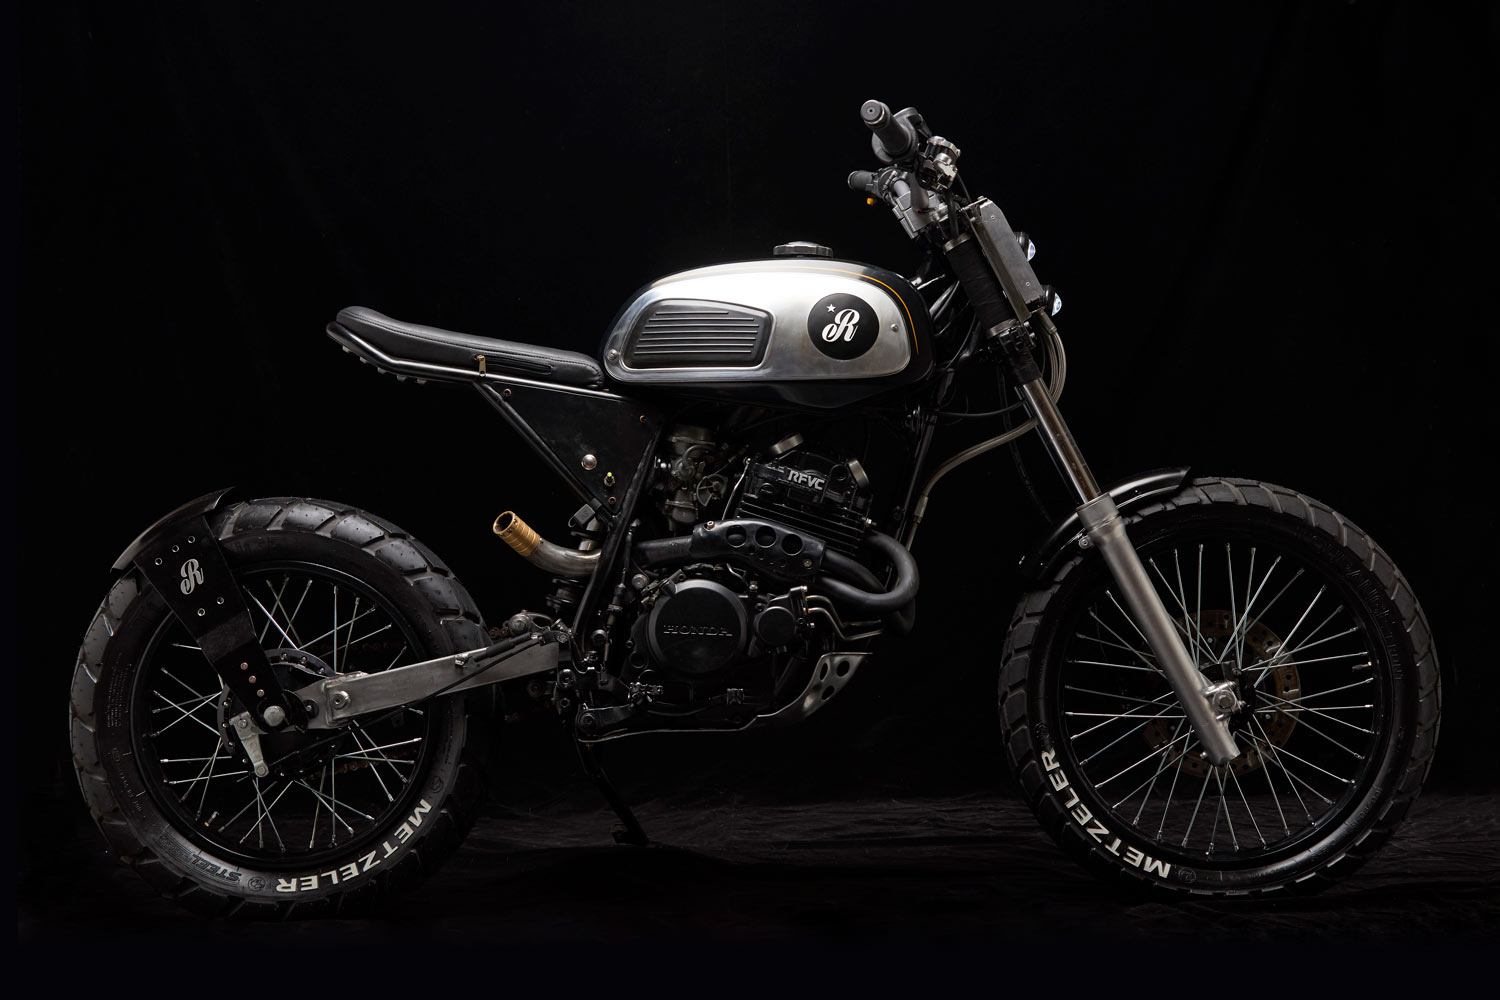 Old is Gold - Republica Motocicletas reveals 1994 Honda NX350 'Old Power'